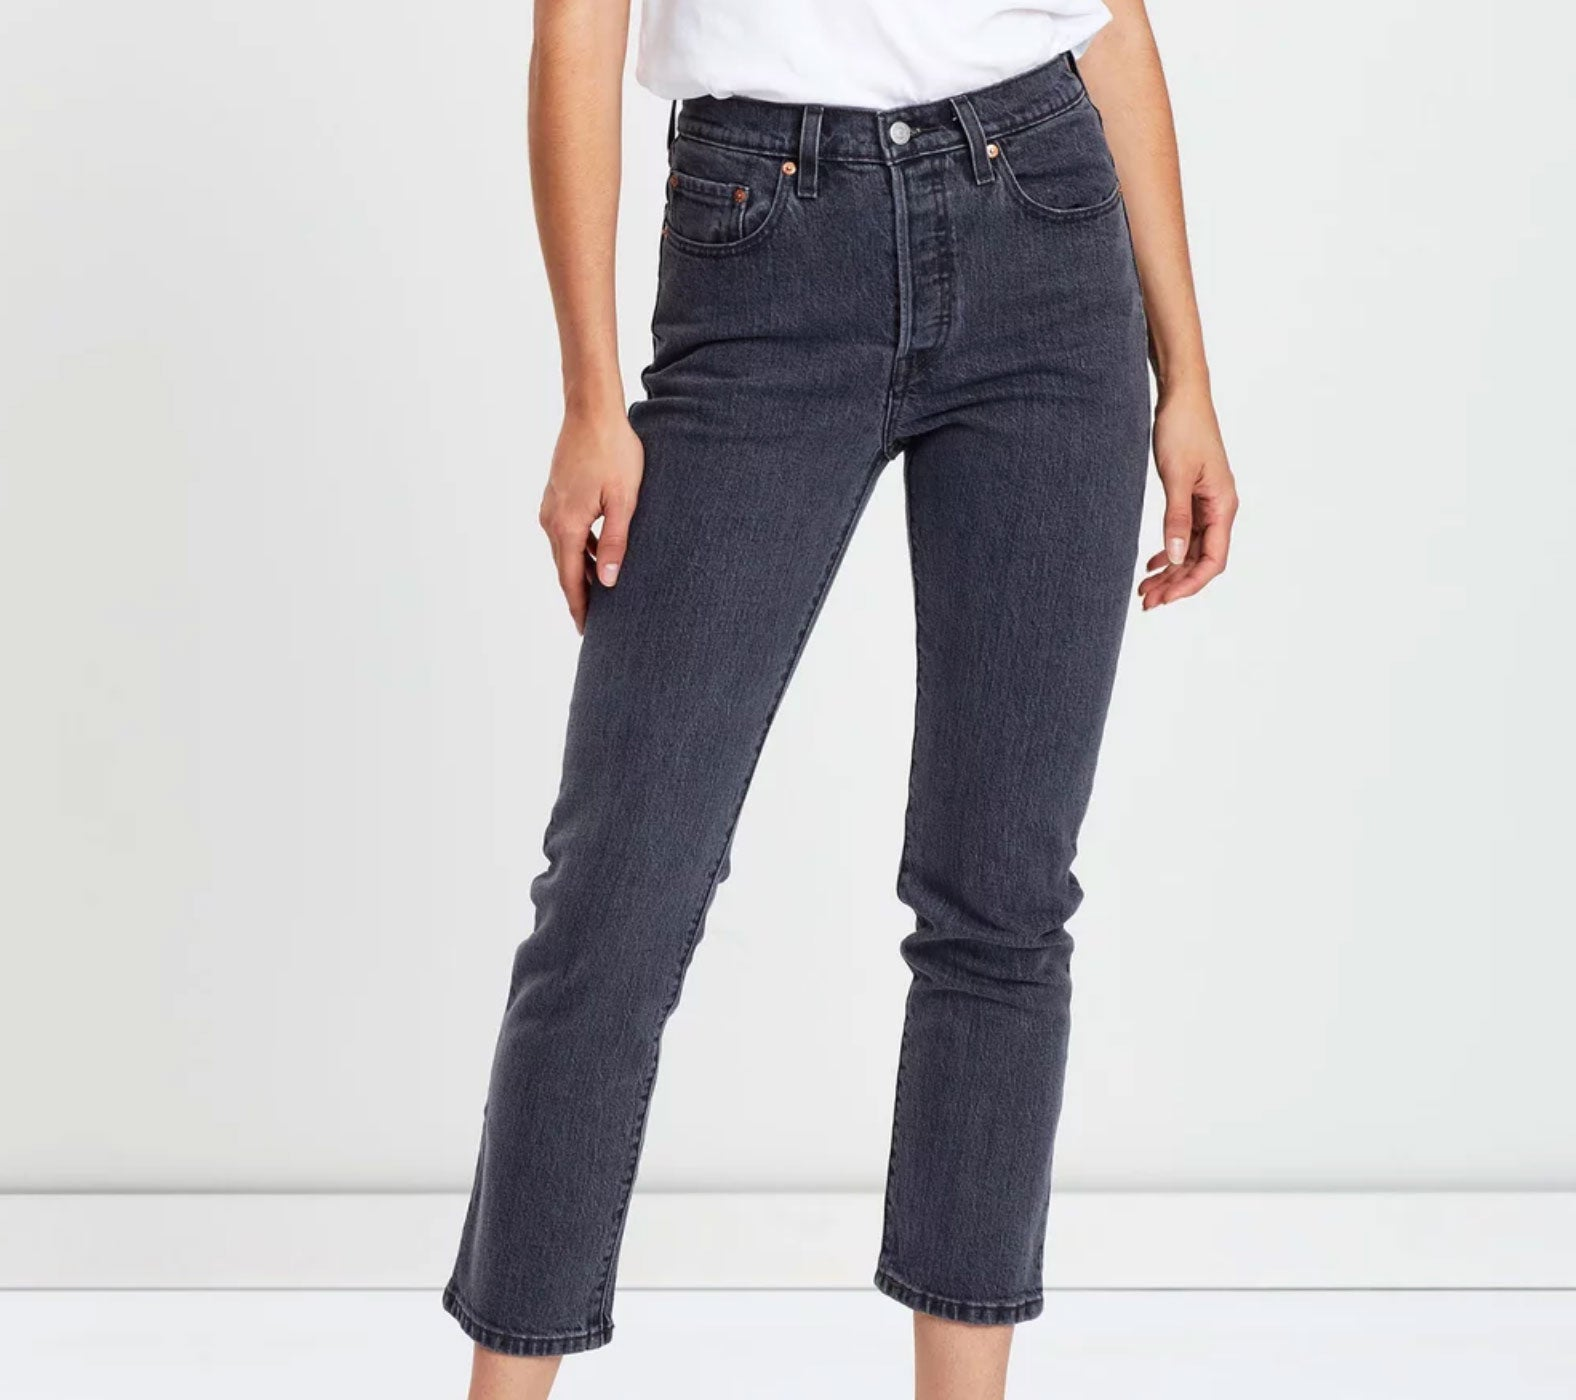 Levis 501 - crop black denim jeans